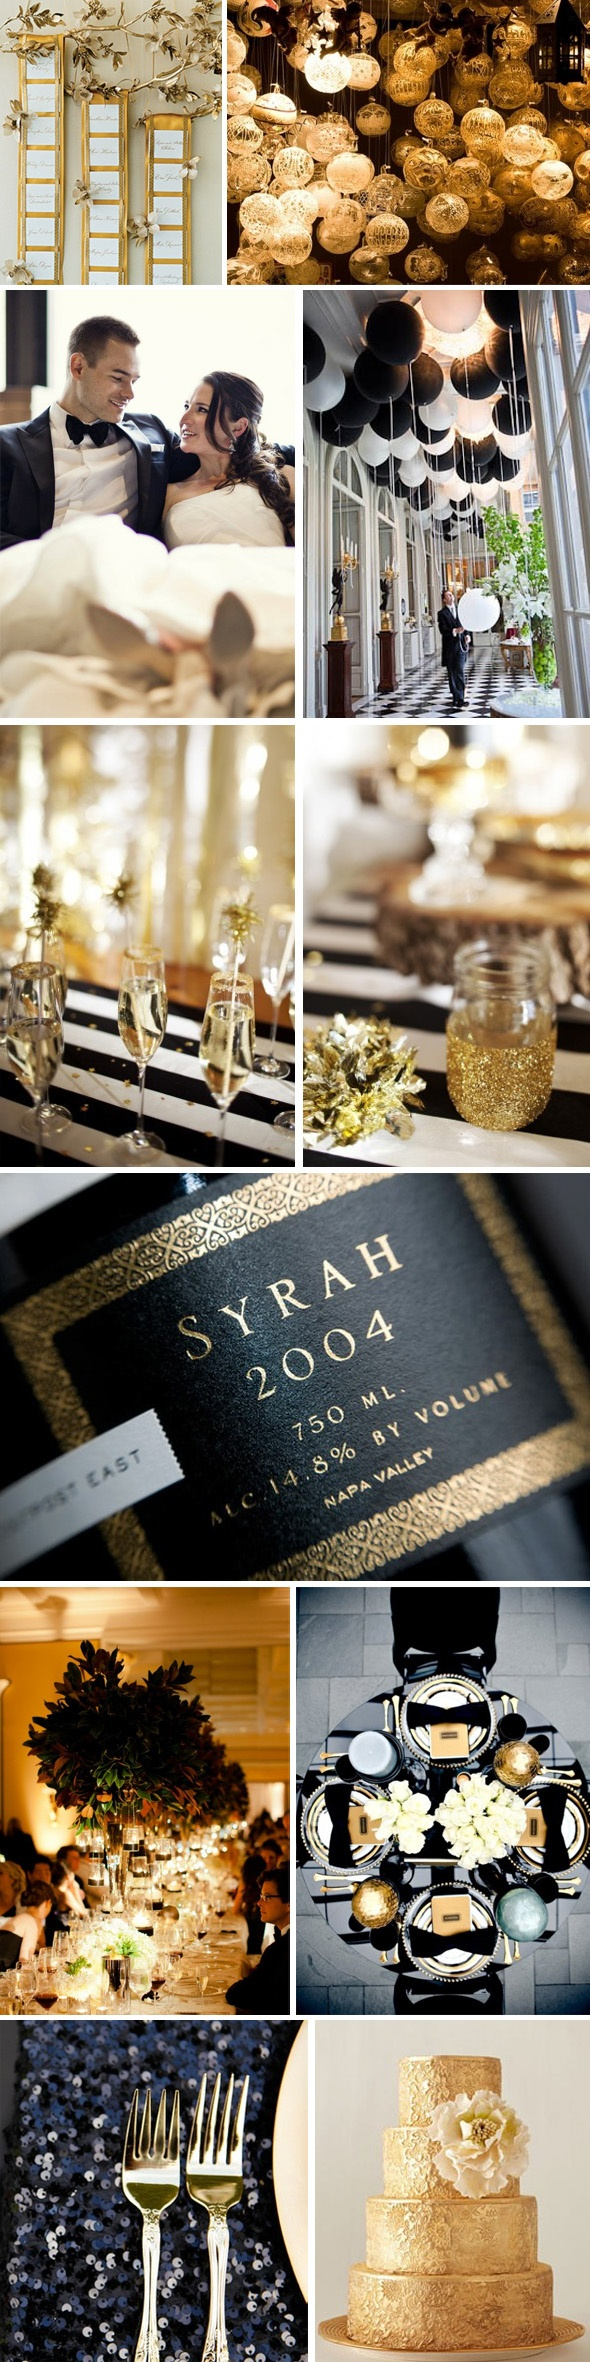 New years eve wedding theme ideas dipped in lace - Black and gold wedding reception decorations ...